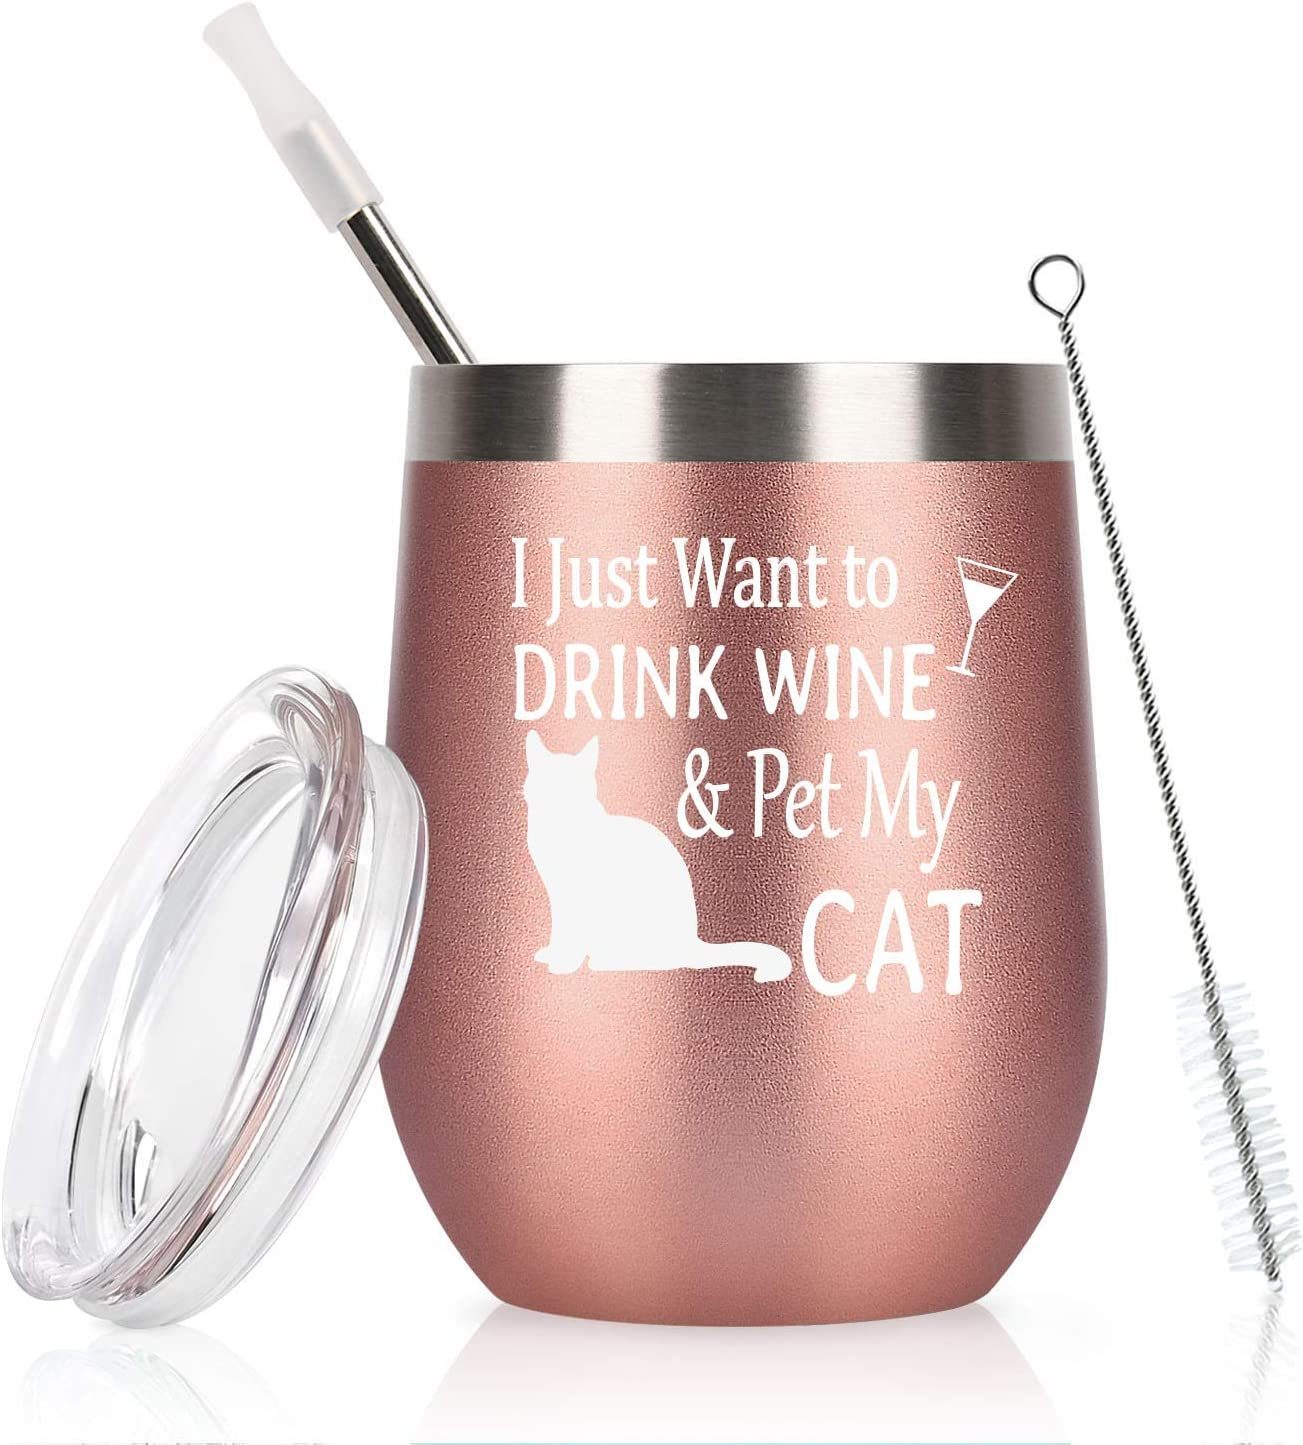 Cpskup I Just Want to Drink Wine Stemless Insulat and Cat Save money Pet Sale My